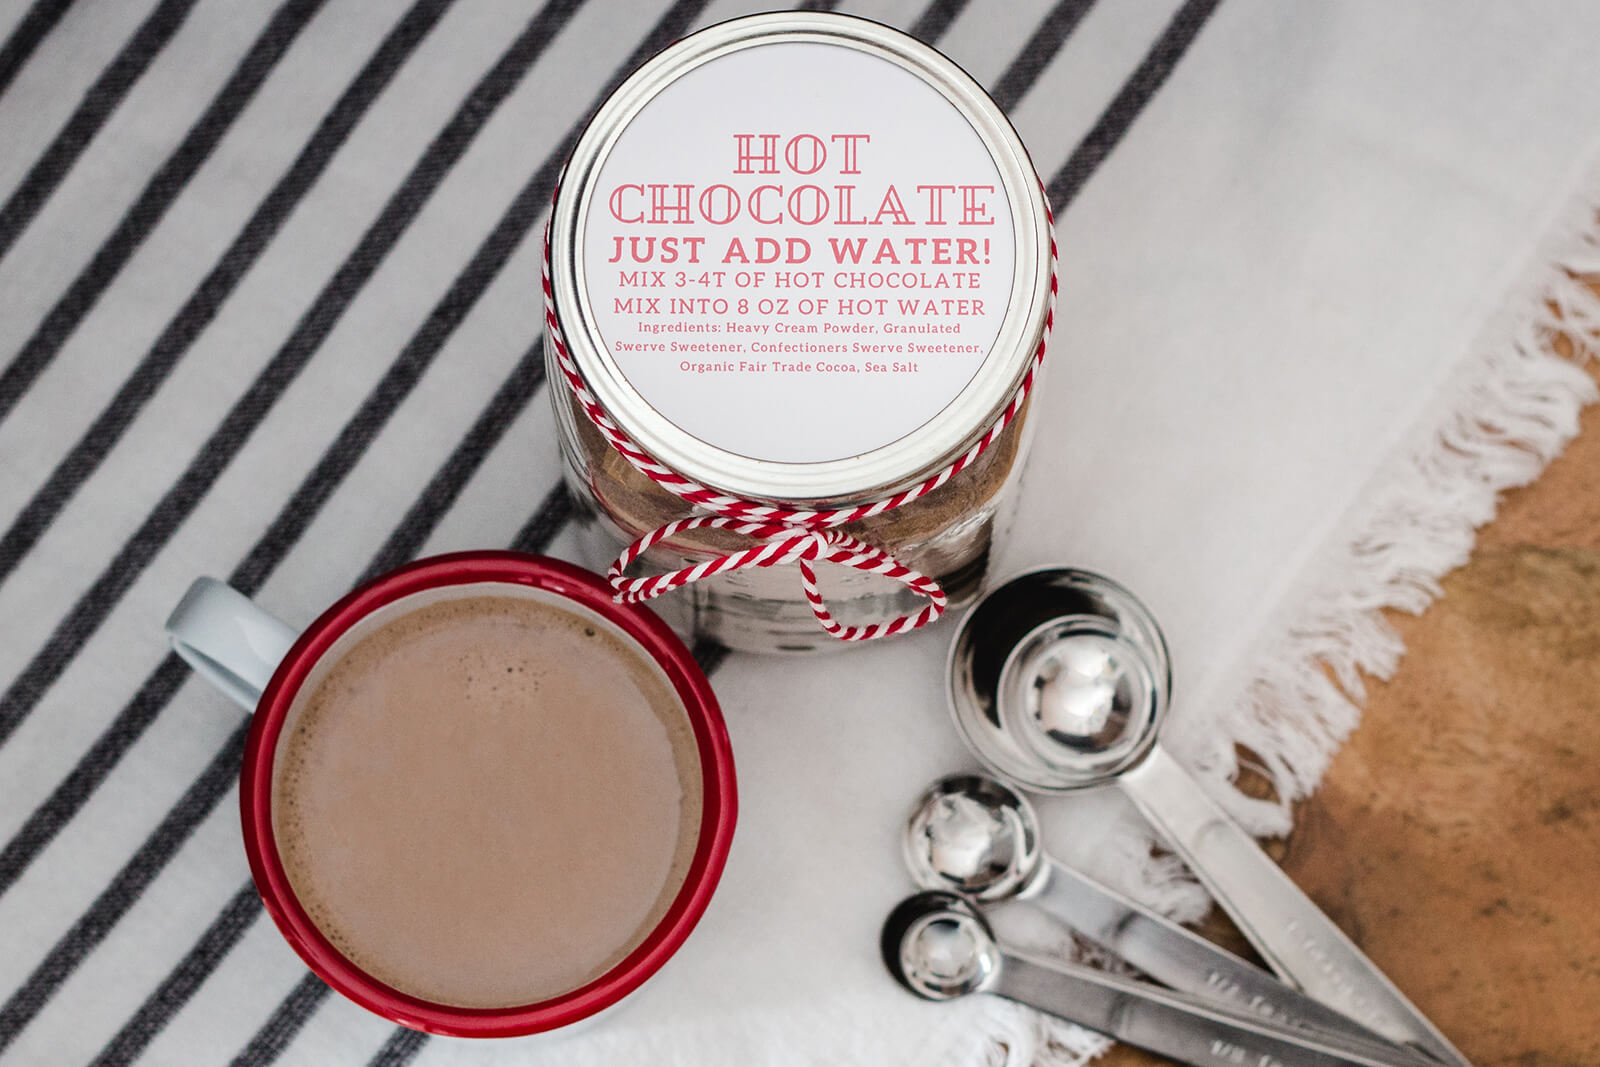 Homemade Keto Hot Chocolate Mix Recipe Bake It Keto